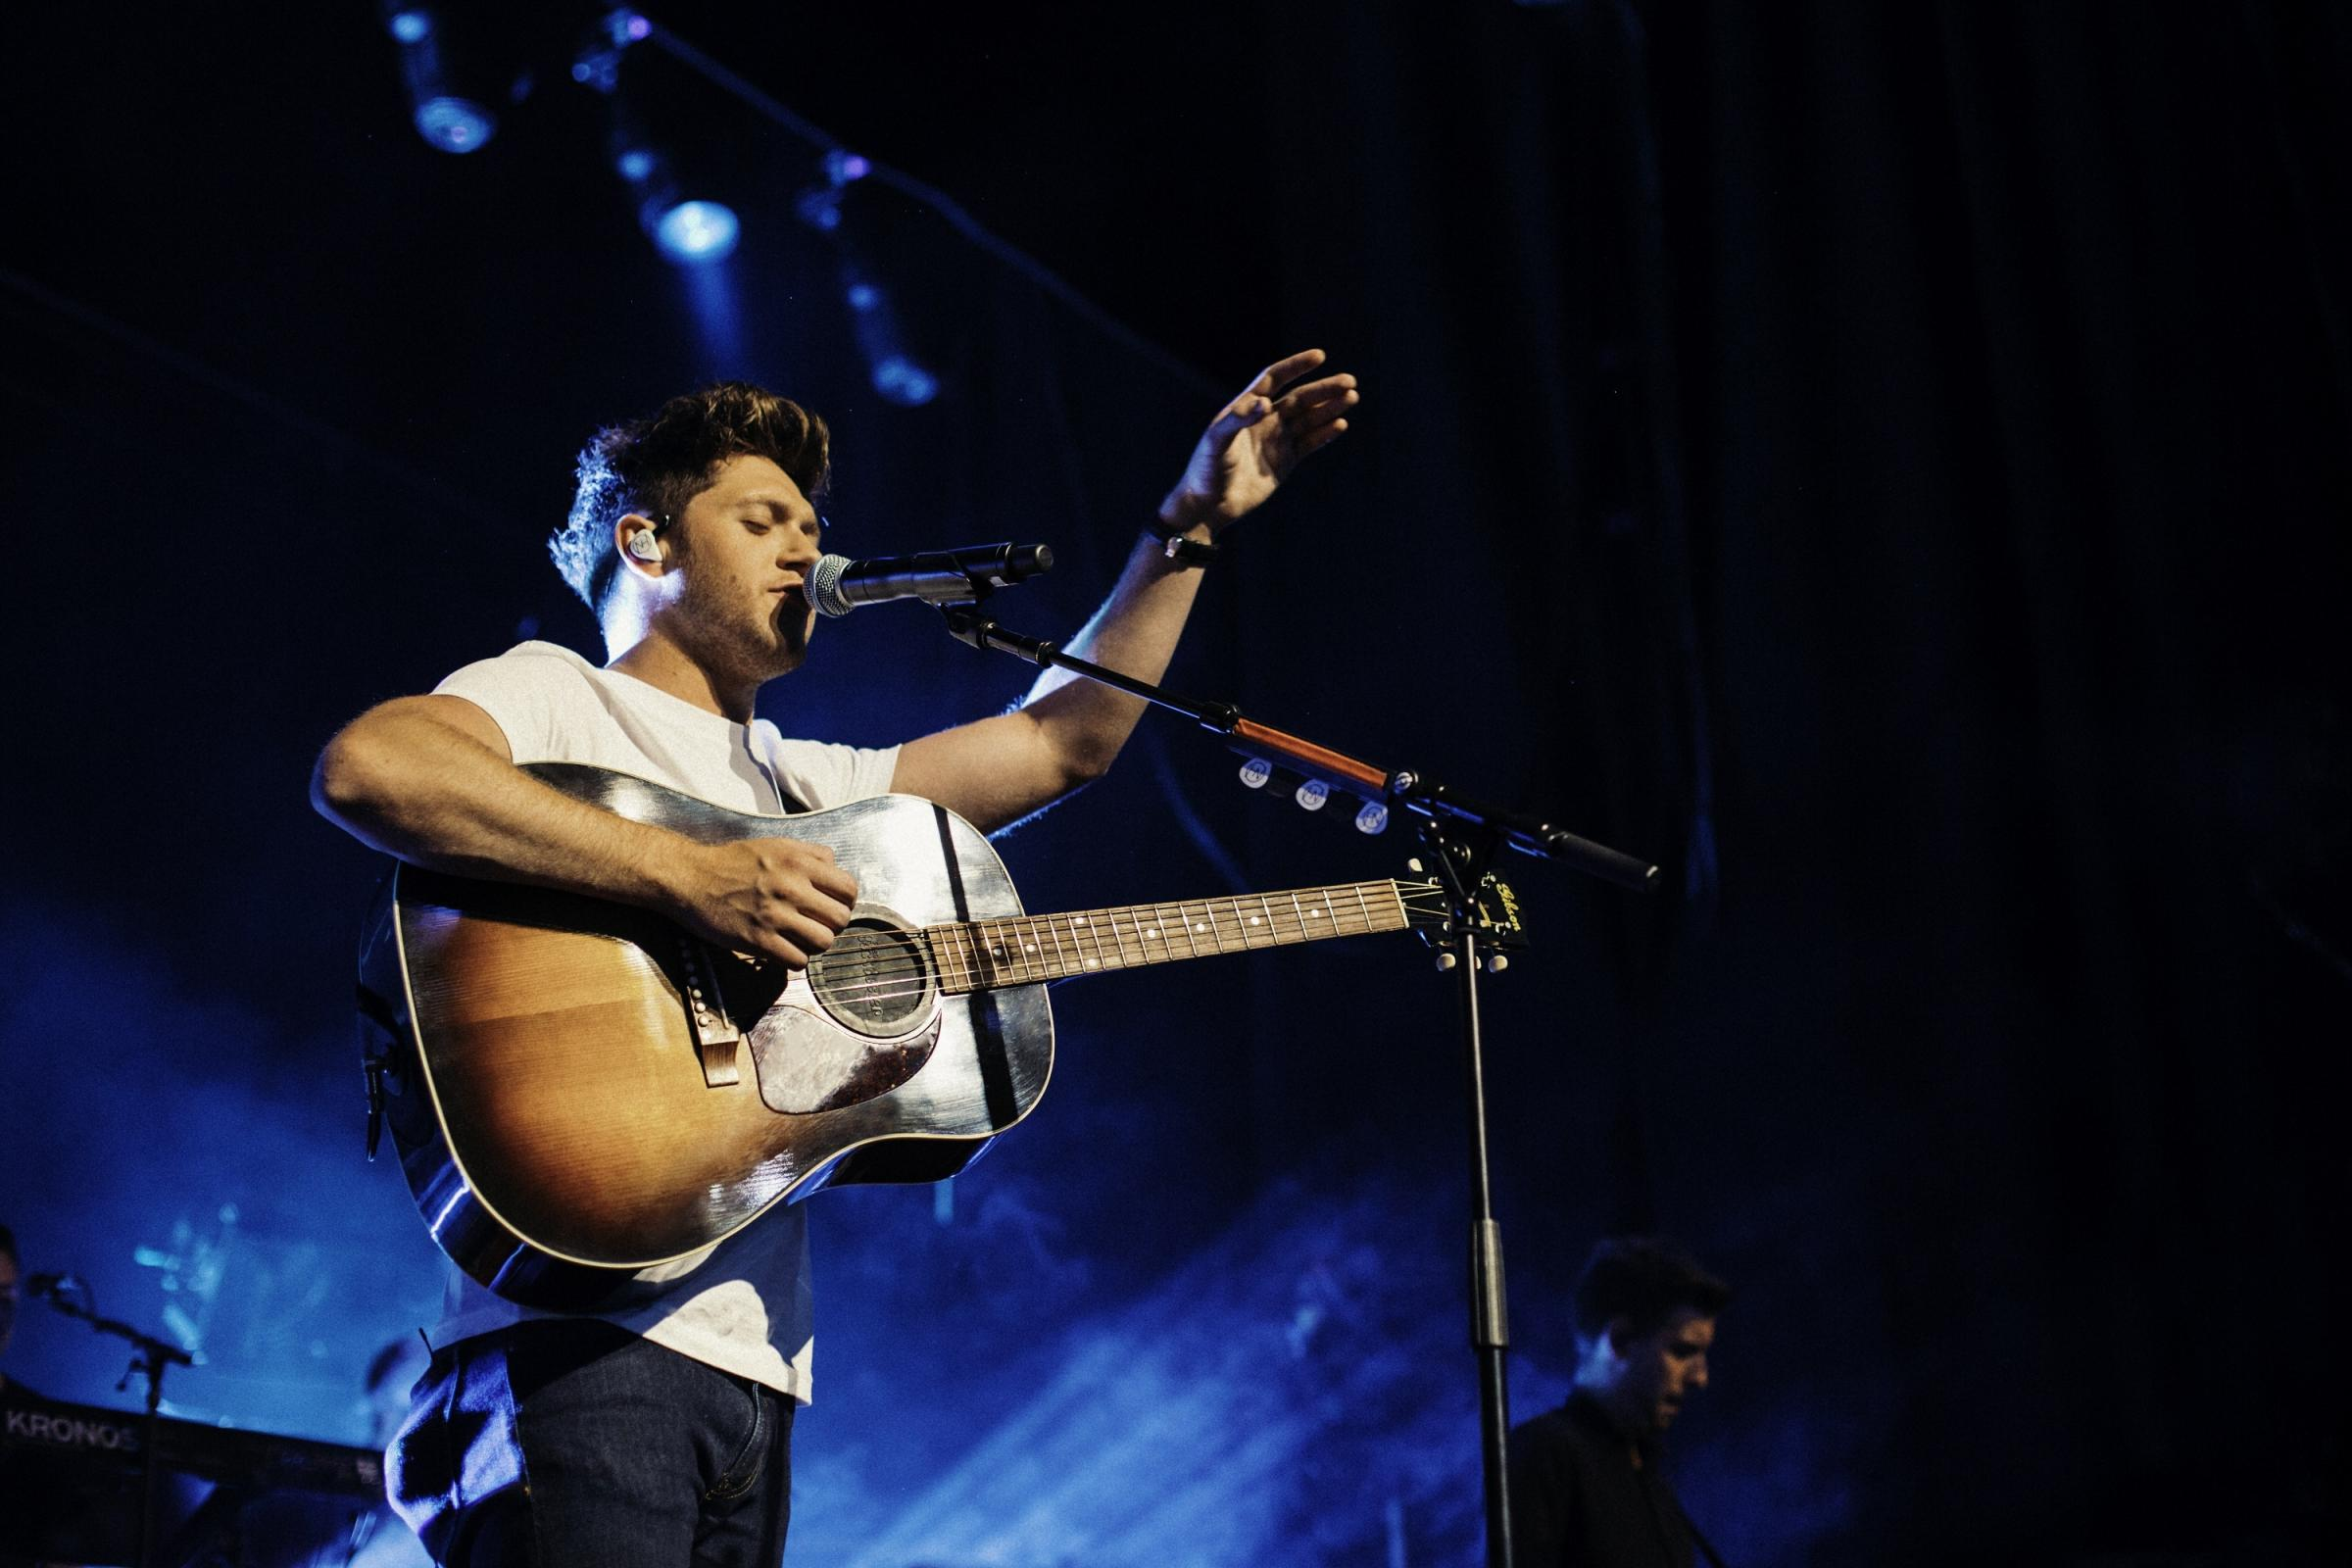 Niall Horan is bringing his first solo tour to Cardiff next March